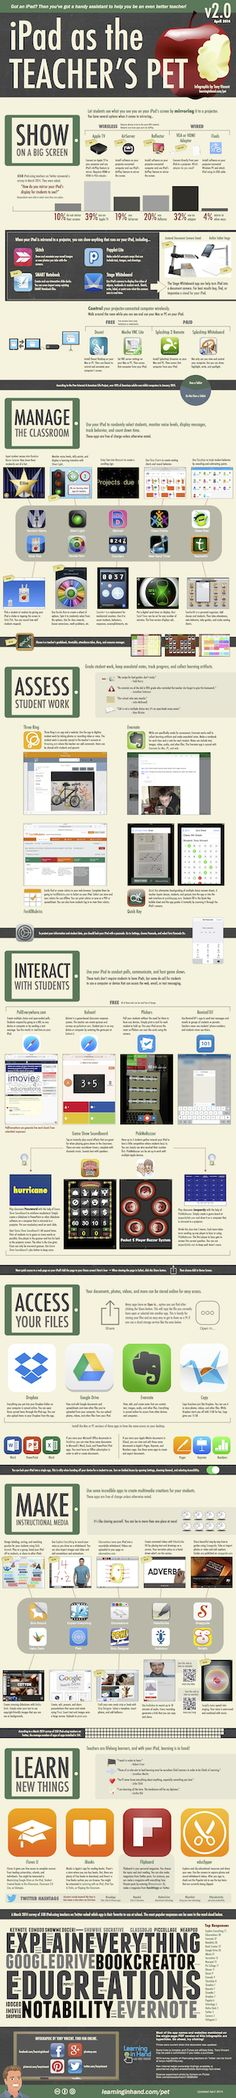 iPad as the Teacher's Pet - Version 2.0 (Updated April 2014)